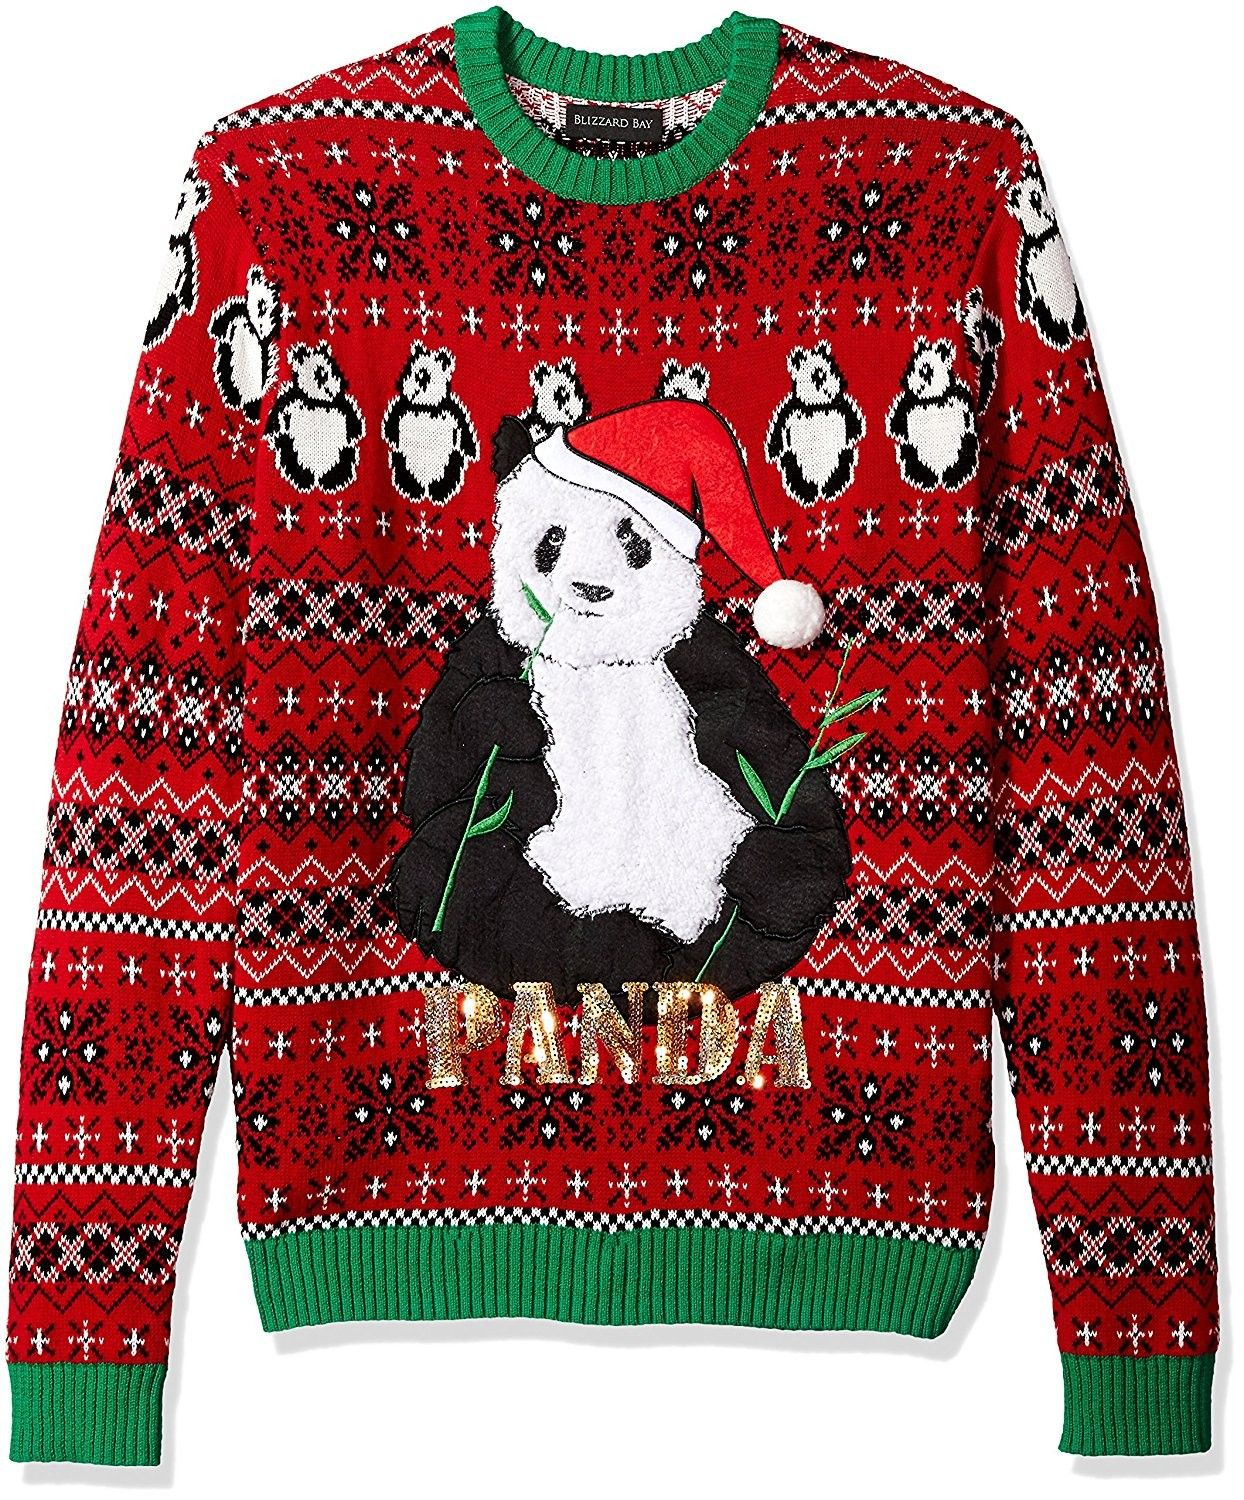 Blizzard Bay Mens Sloth in a Box Ugly Christmas Sweater